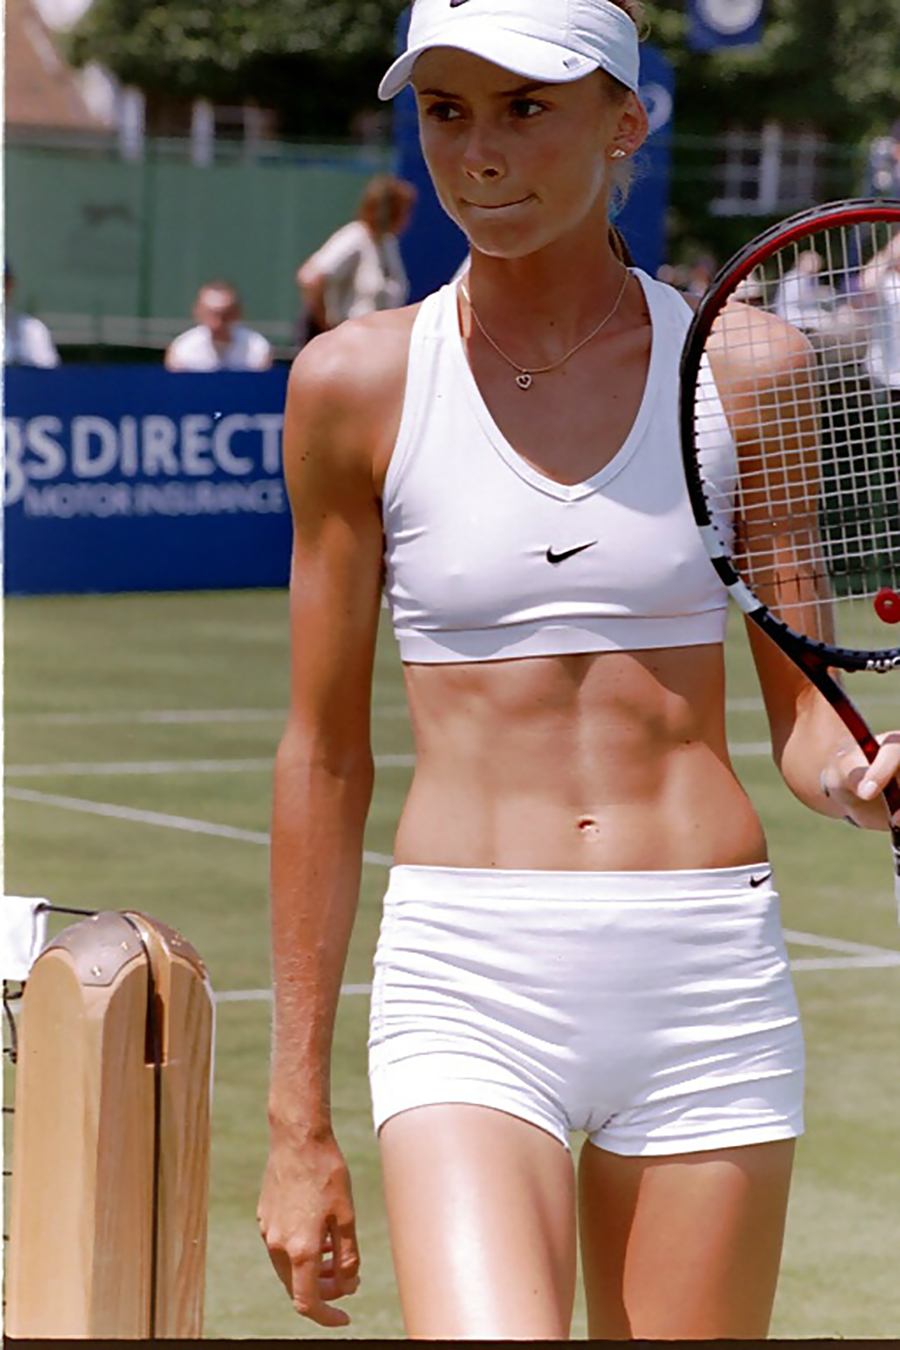 Women tennis players nip slip